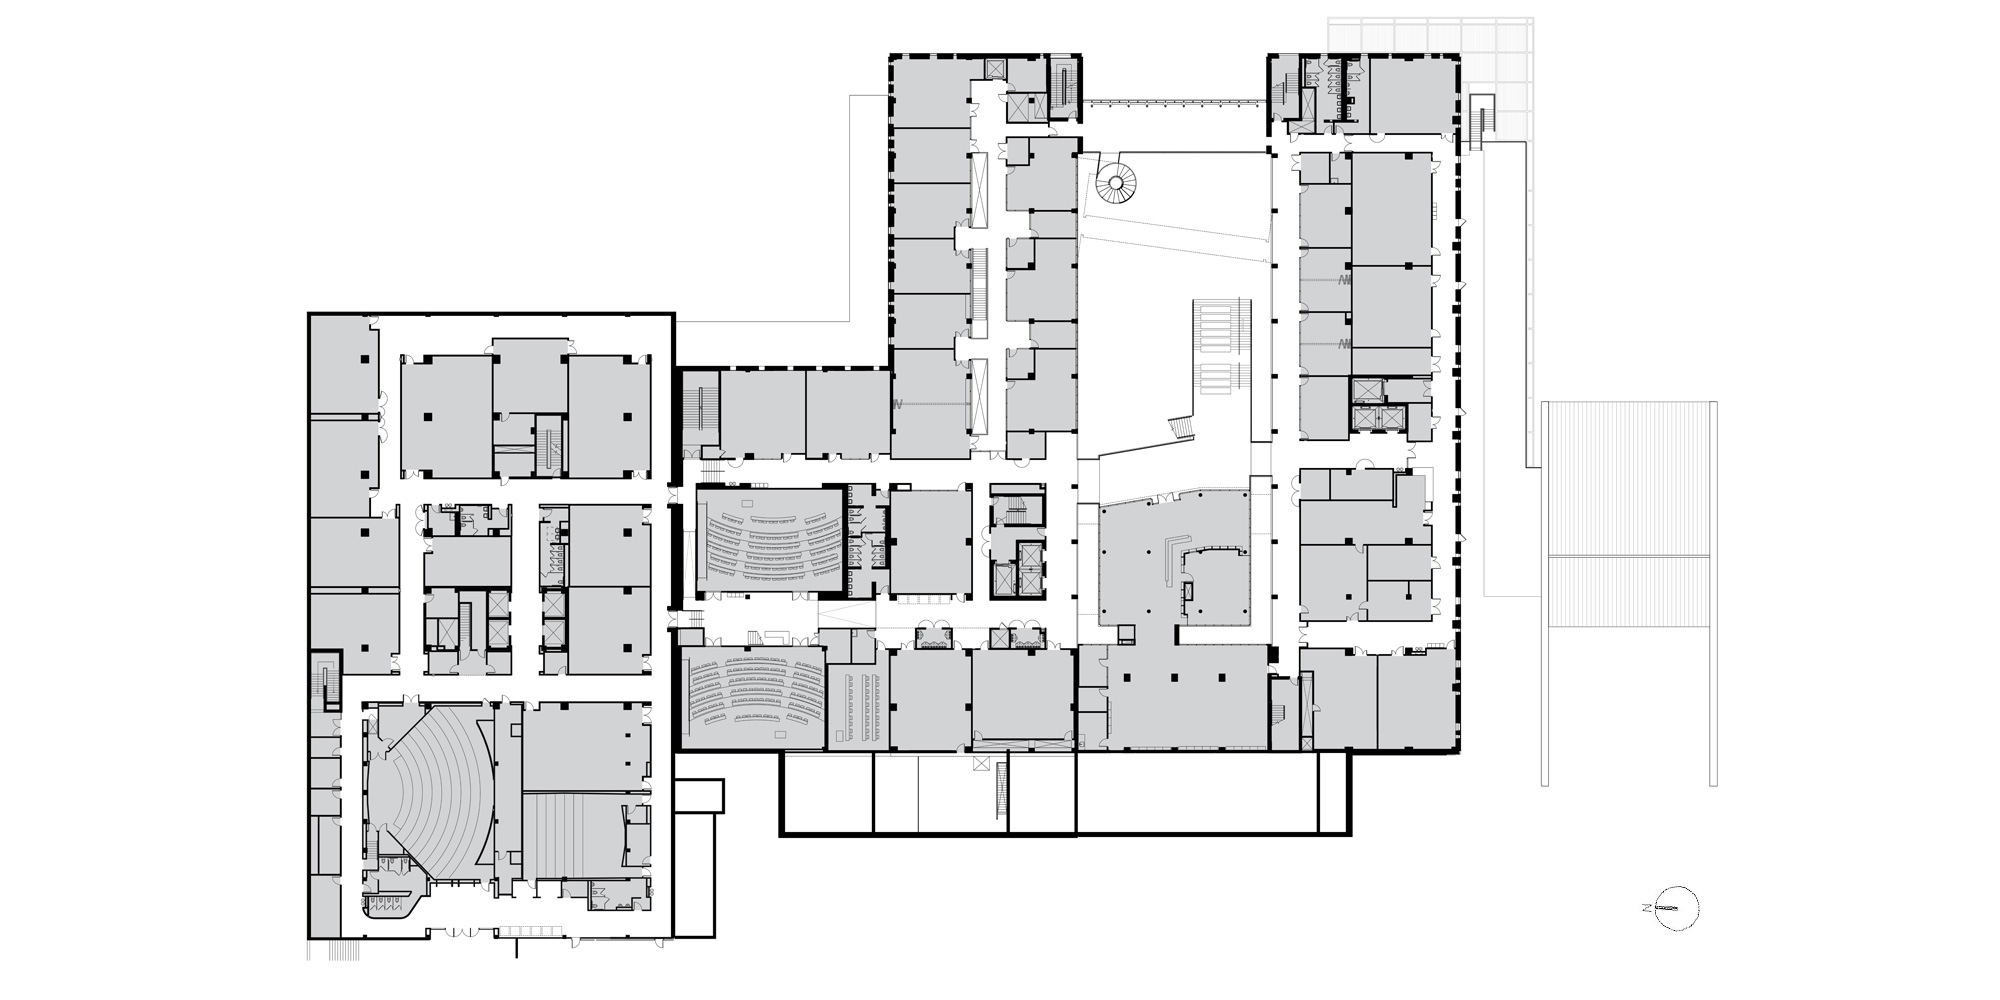 Level 1 plan © Ennead Architects